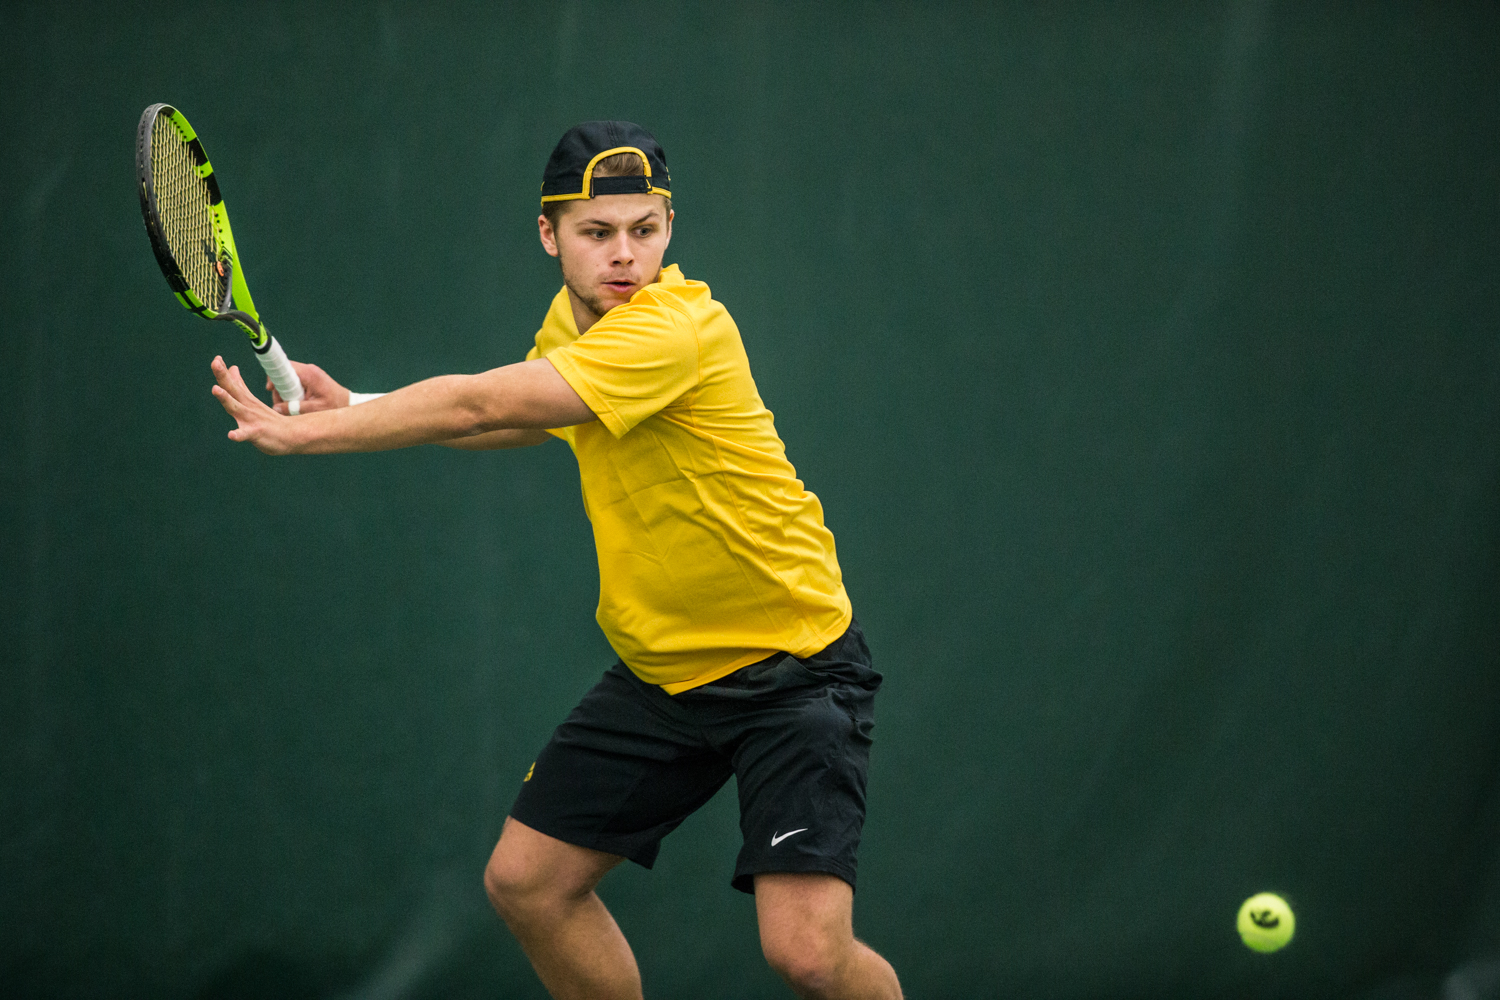 Iowa's Will Davies hits a forehand during a men's tennis matchup between Iowa and Butler on Sunday, January 27, 2019. The Hawkeyes defeated the Bulldogs, 5-2.